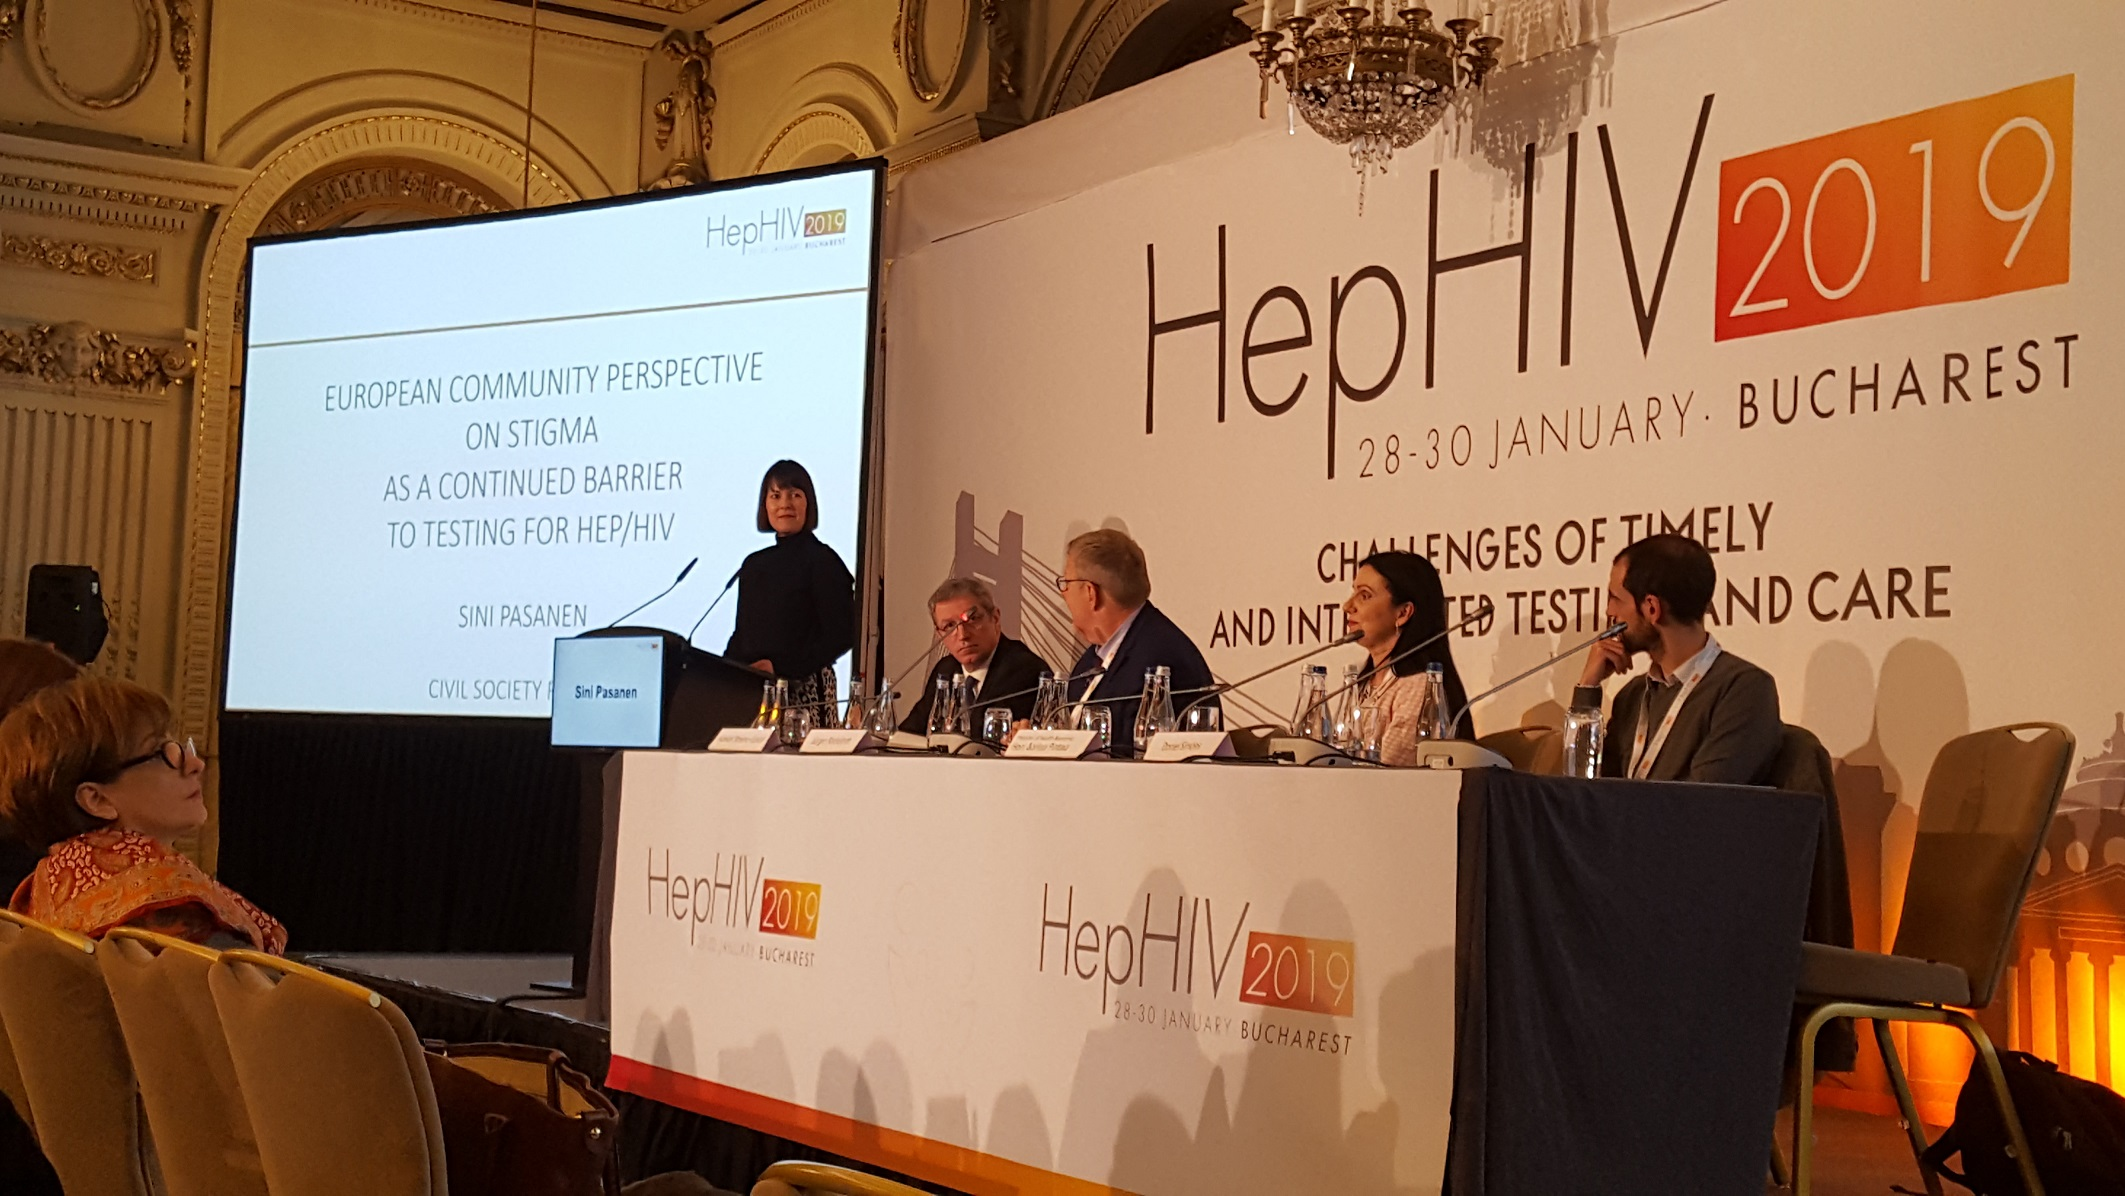 Sini Pasanen at HepHIV 2019 Conference